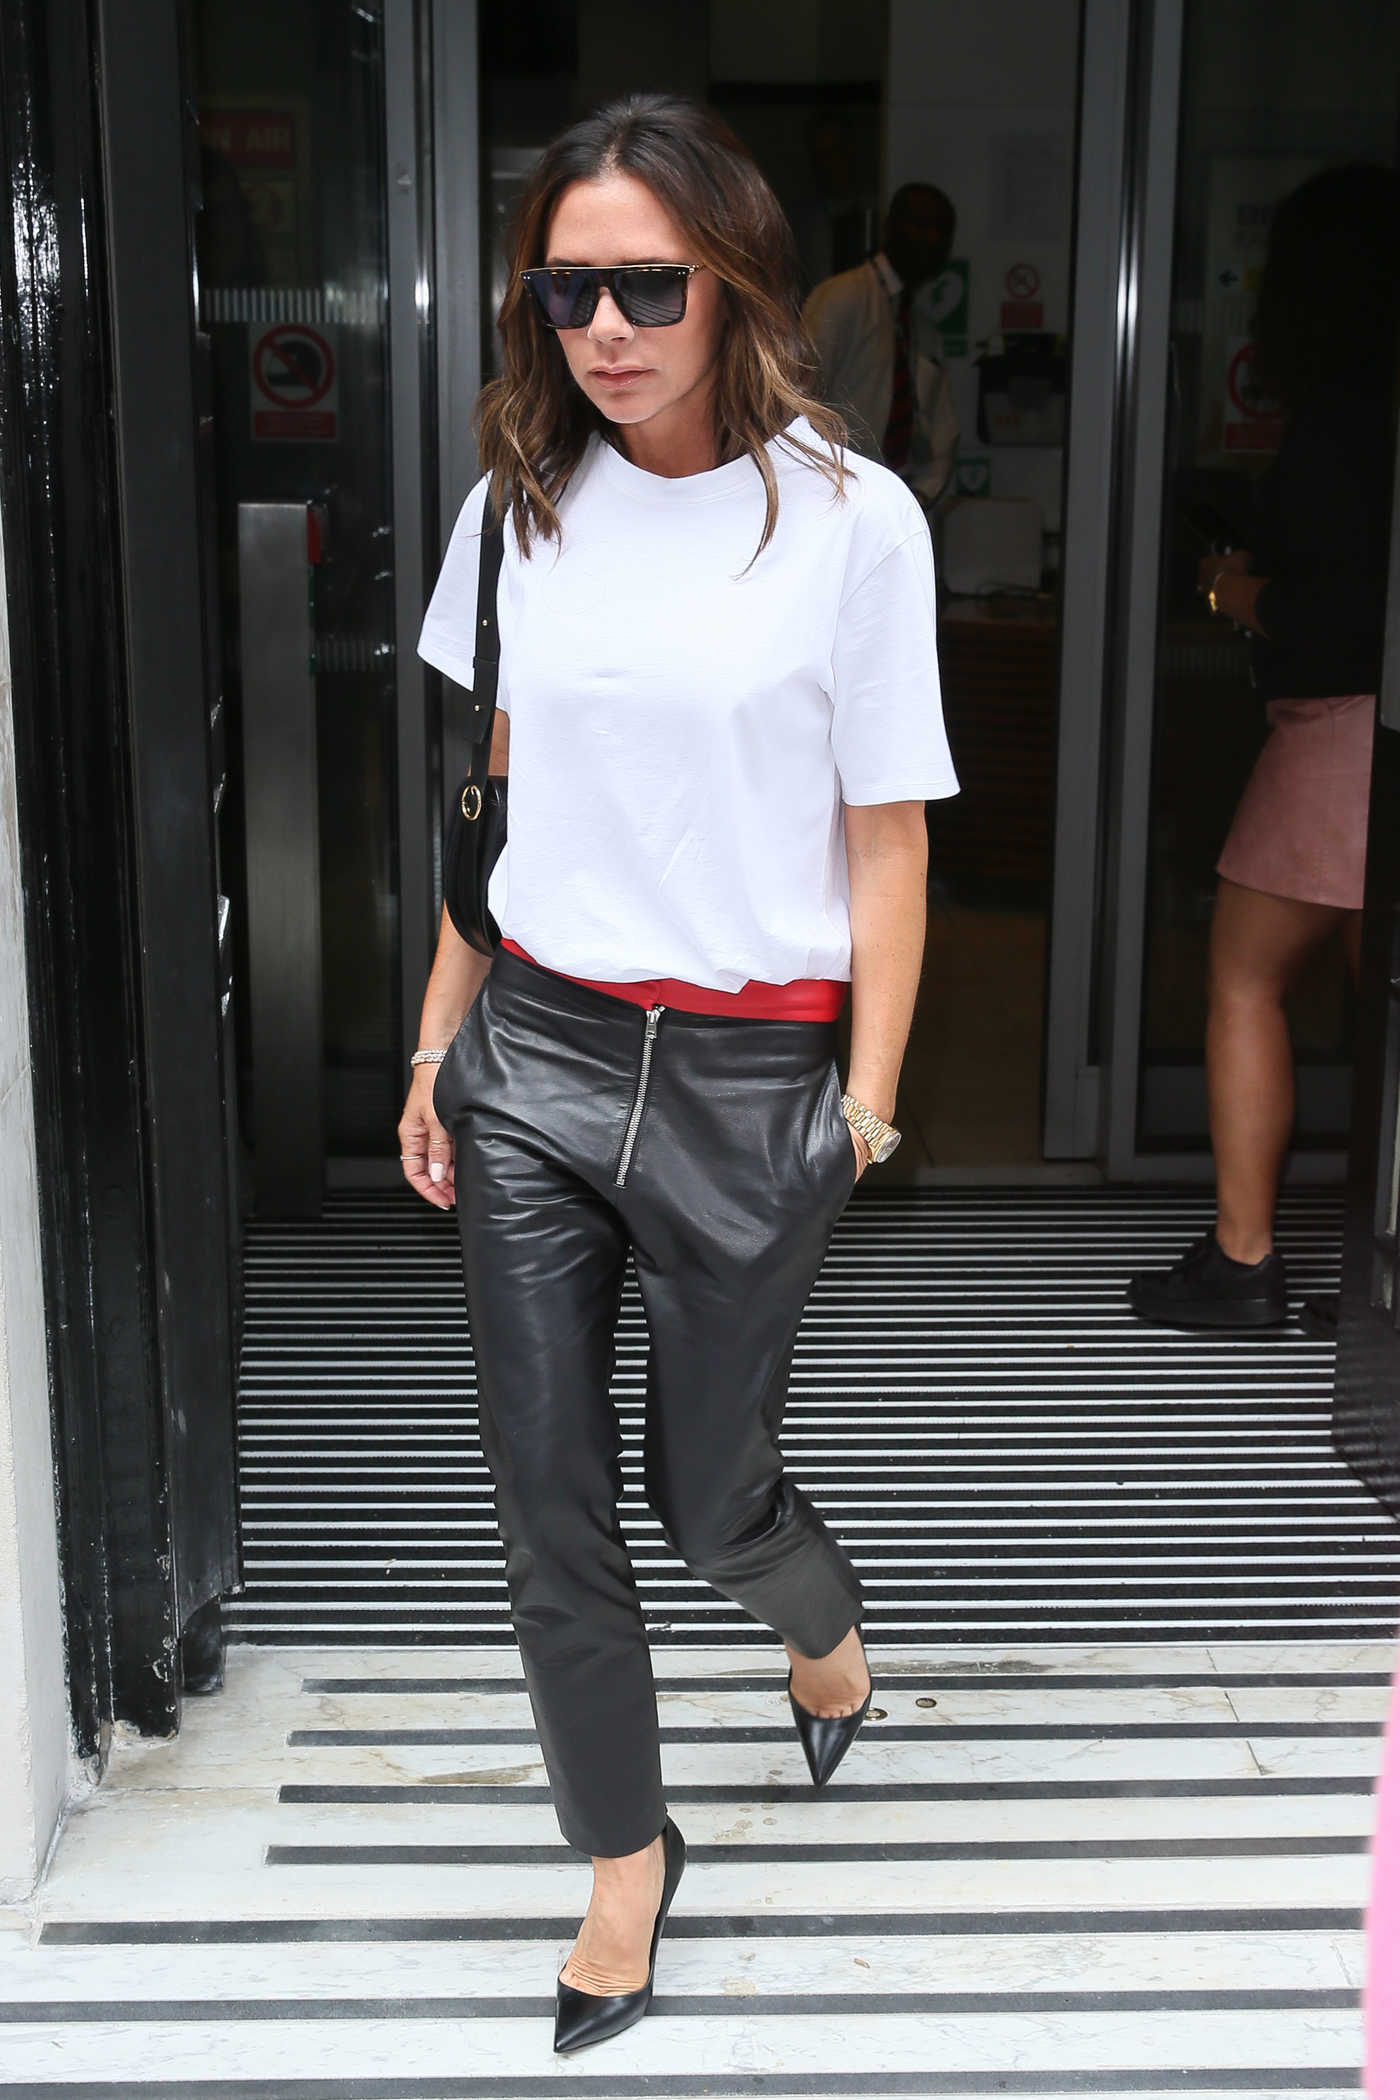 Victoria Beckham in a White T-Shirt Arrives at BBC Radio 2 Studios in London 09/04/2018